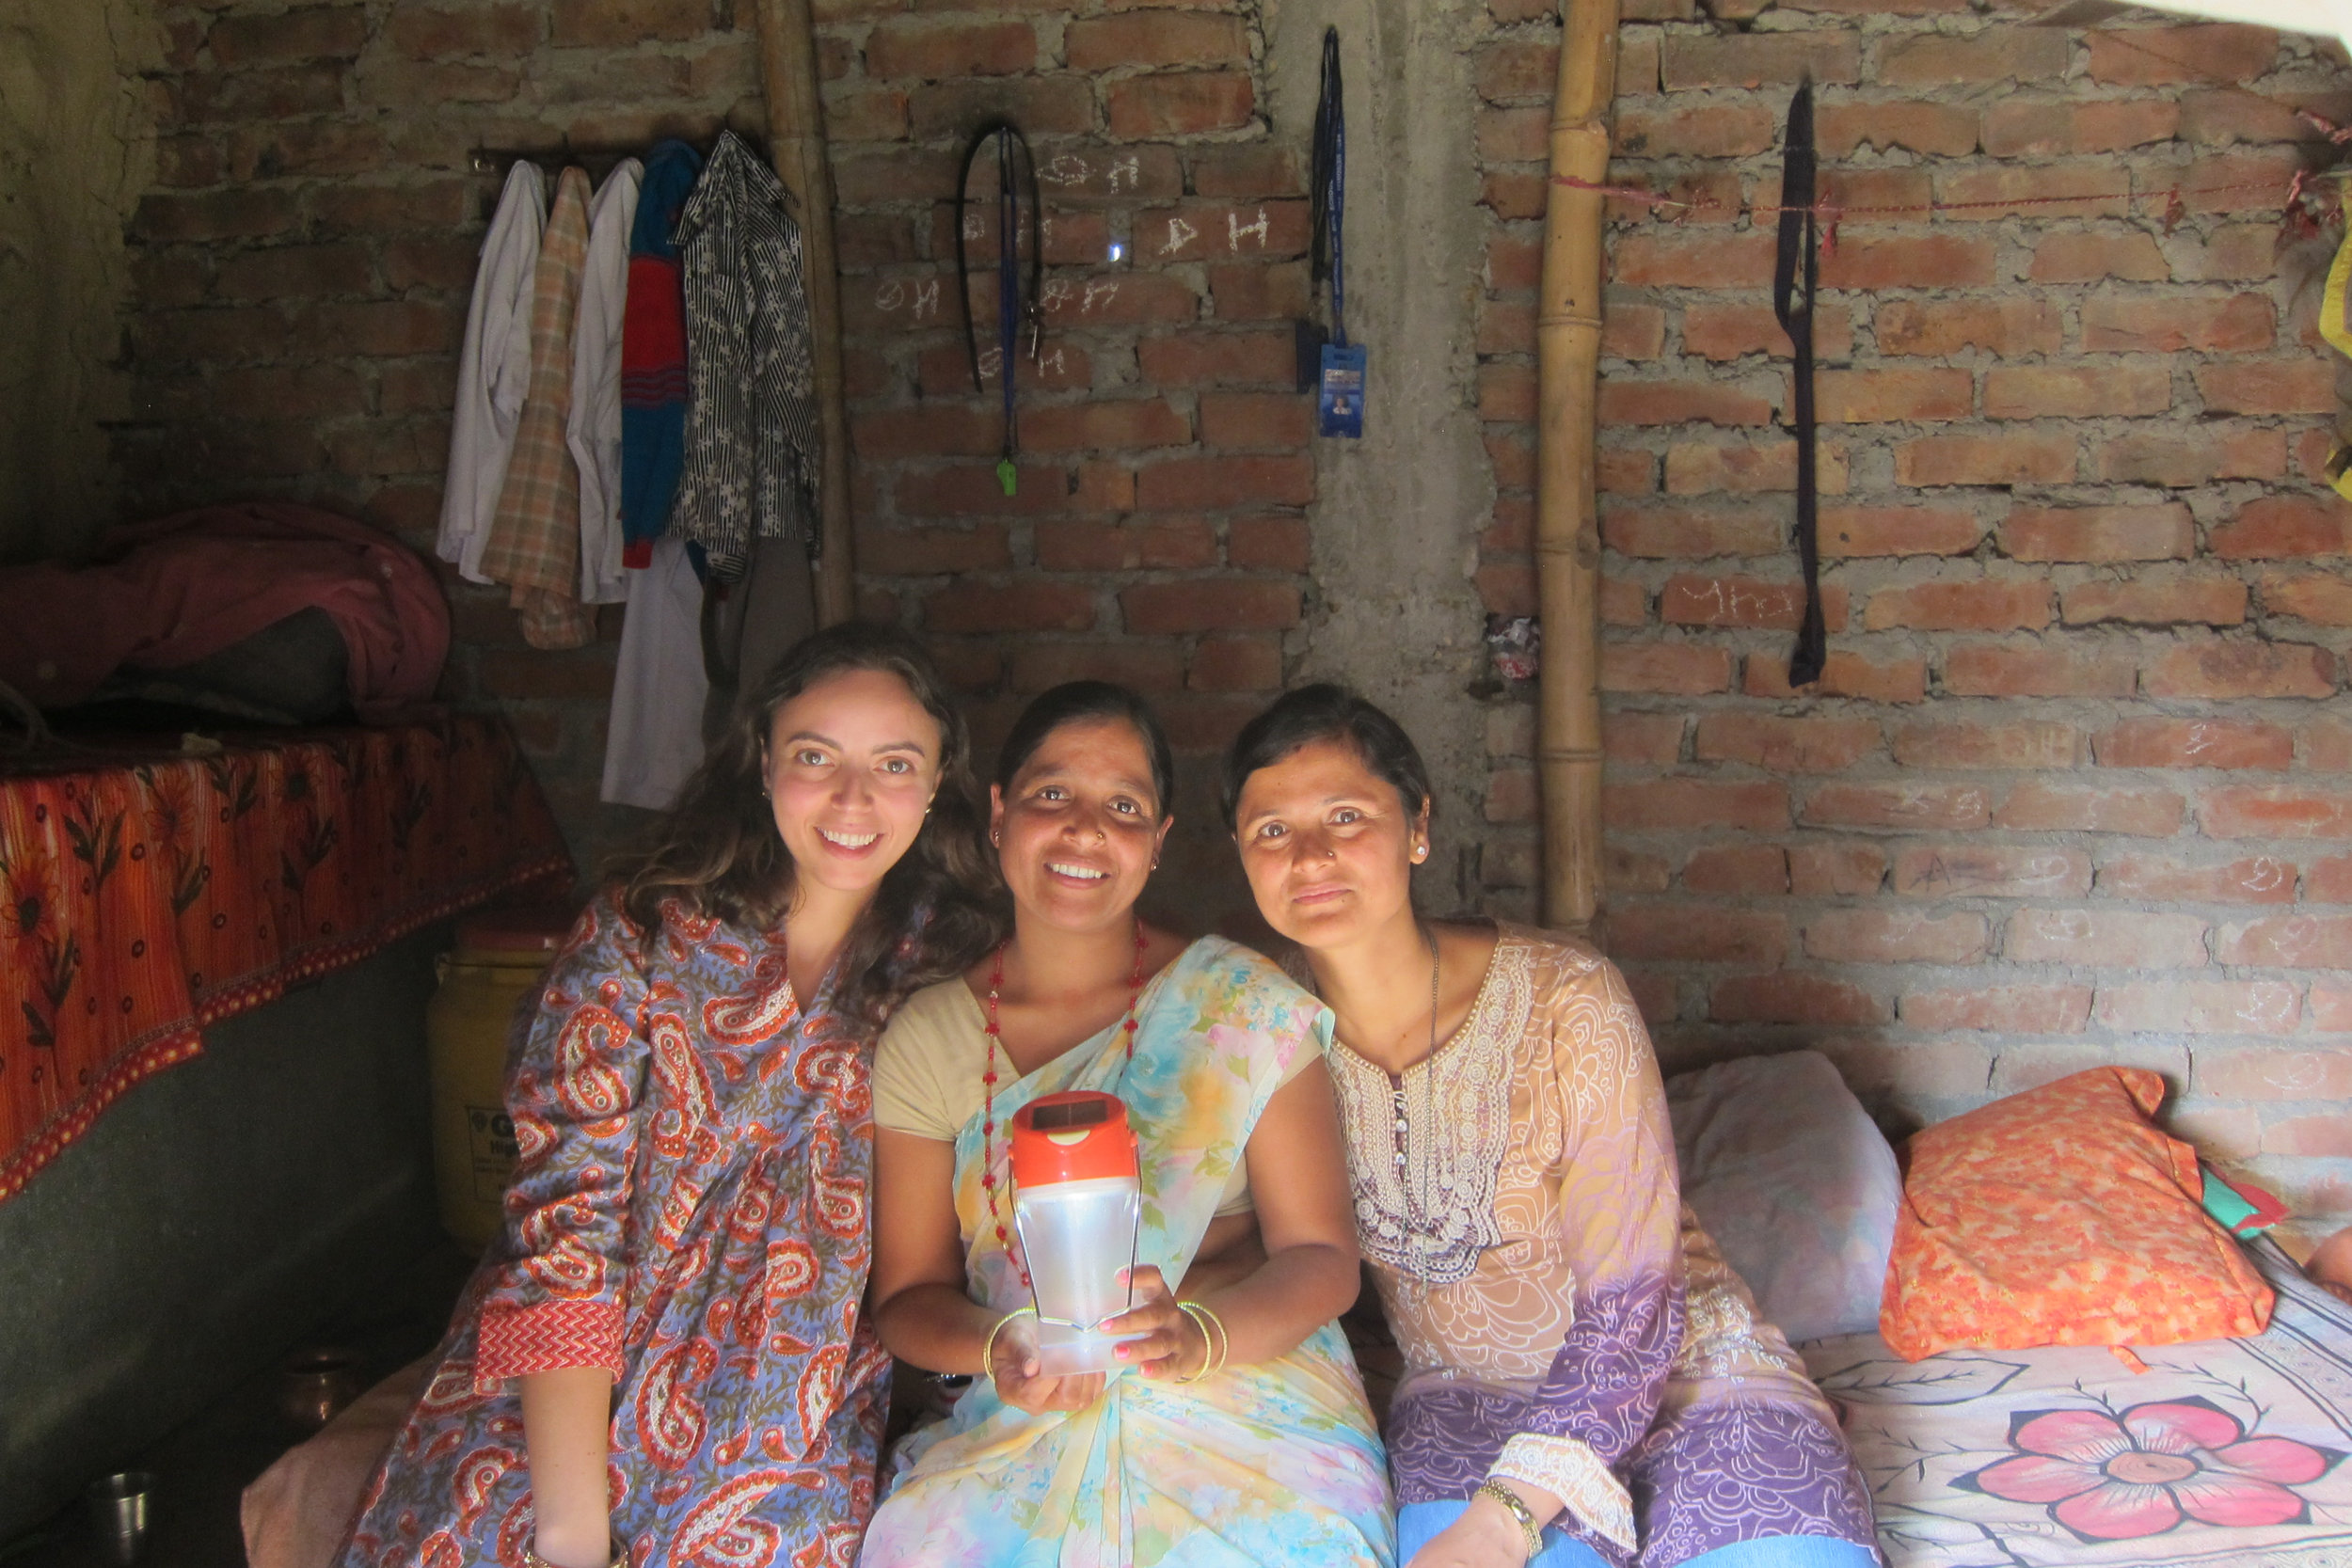 Anya, Empower Generation entrepreneur Runa Jha, and Sita